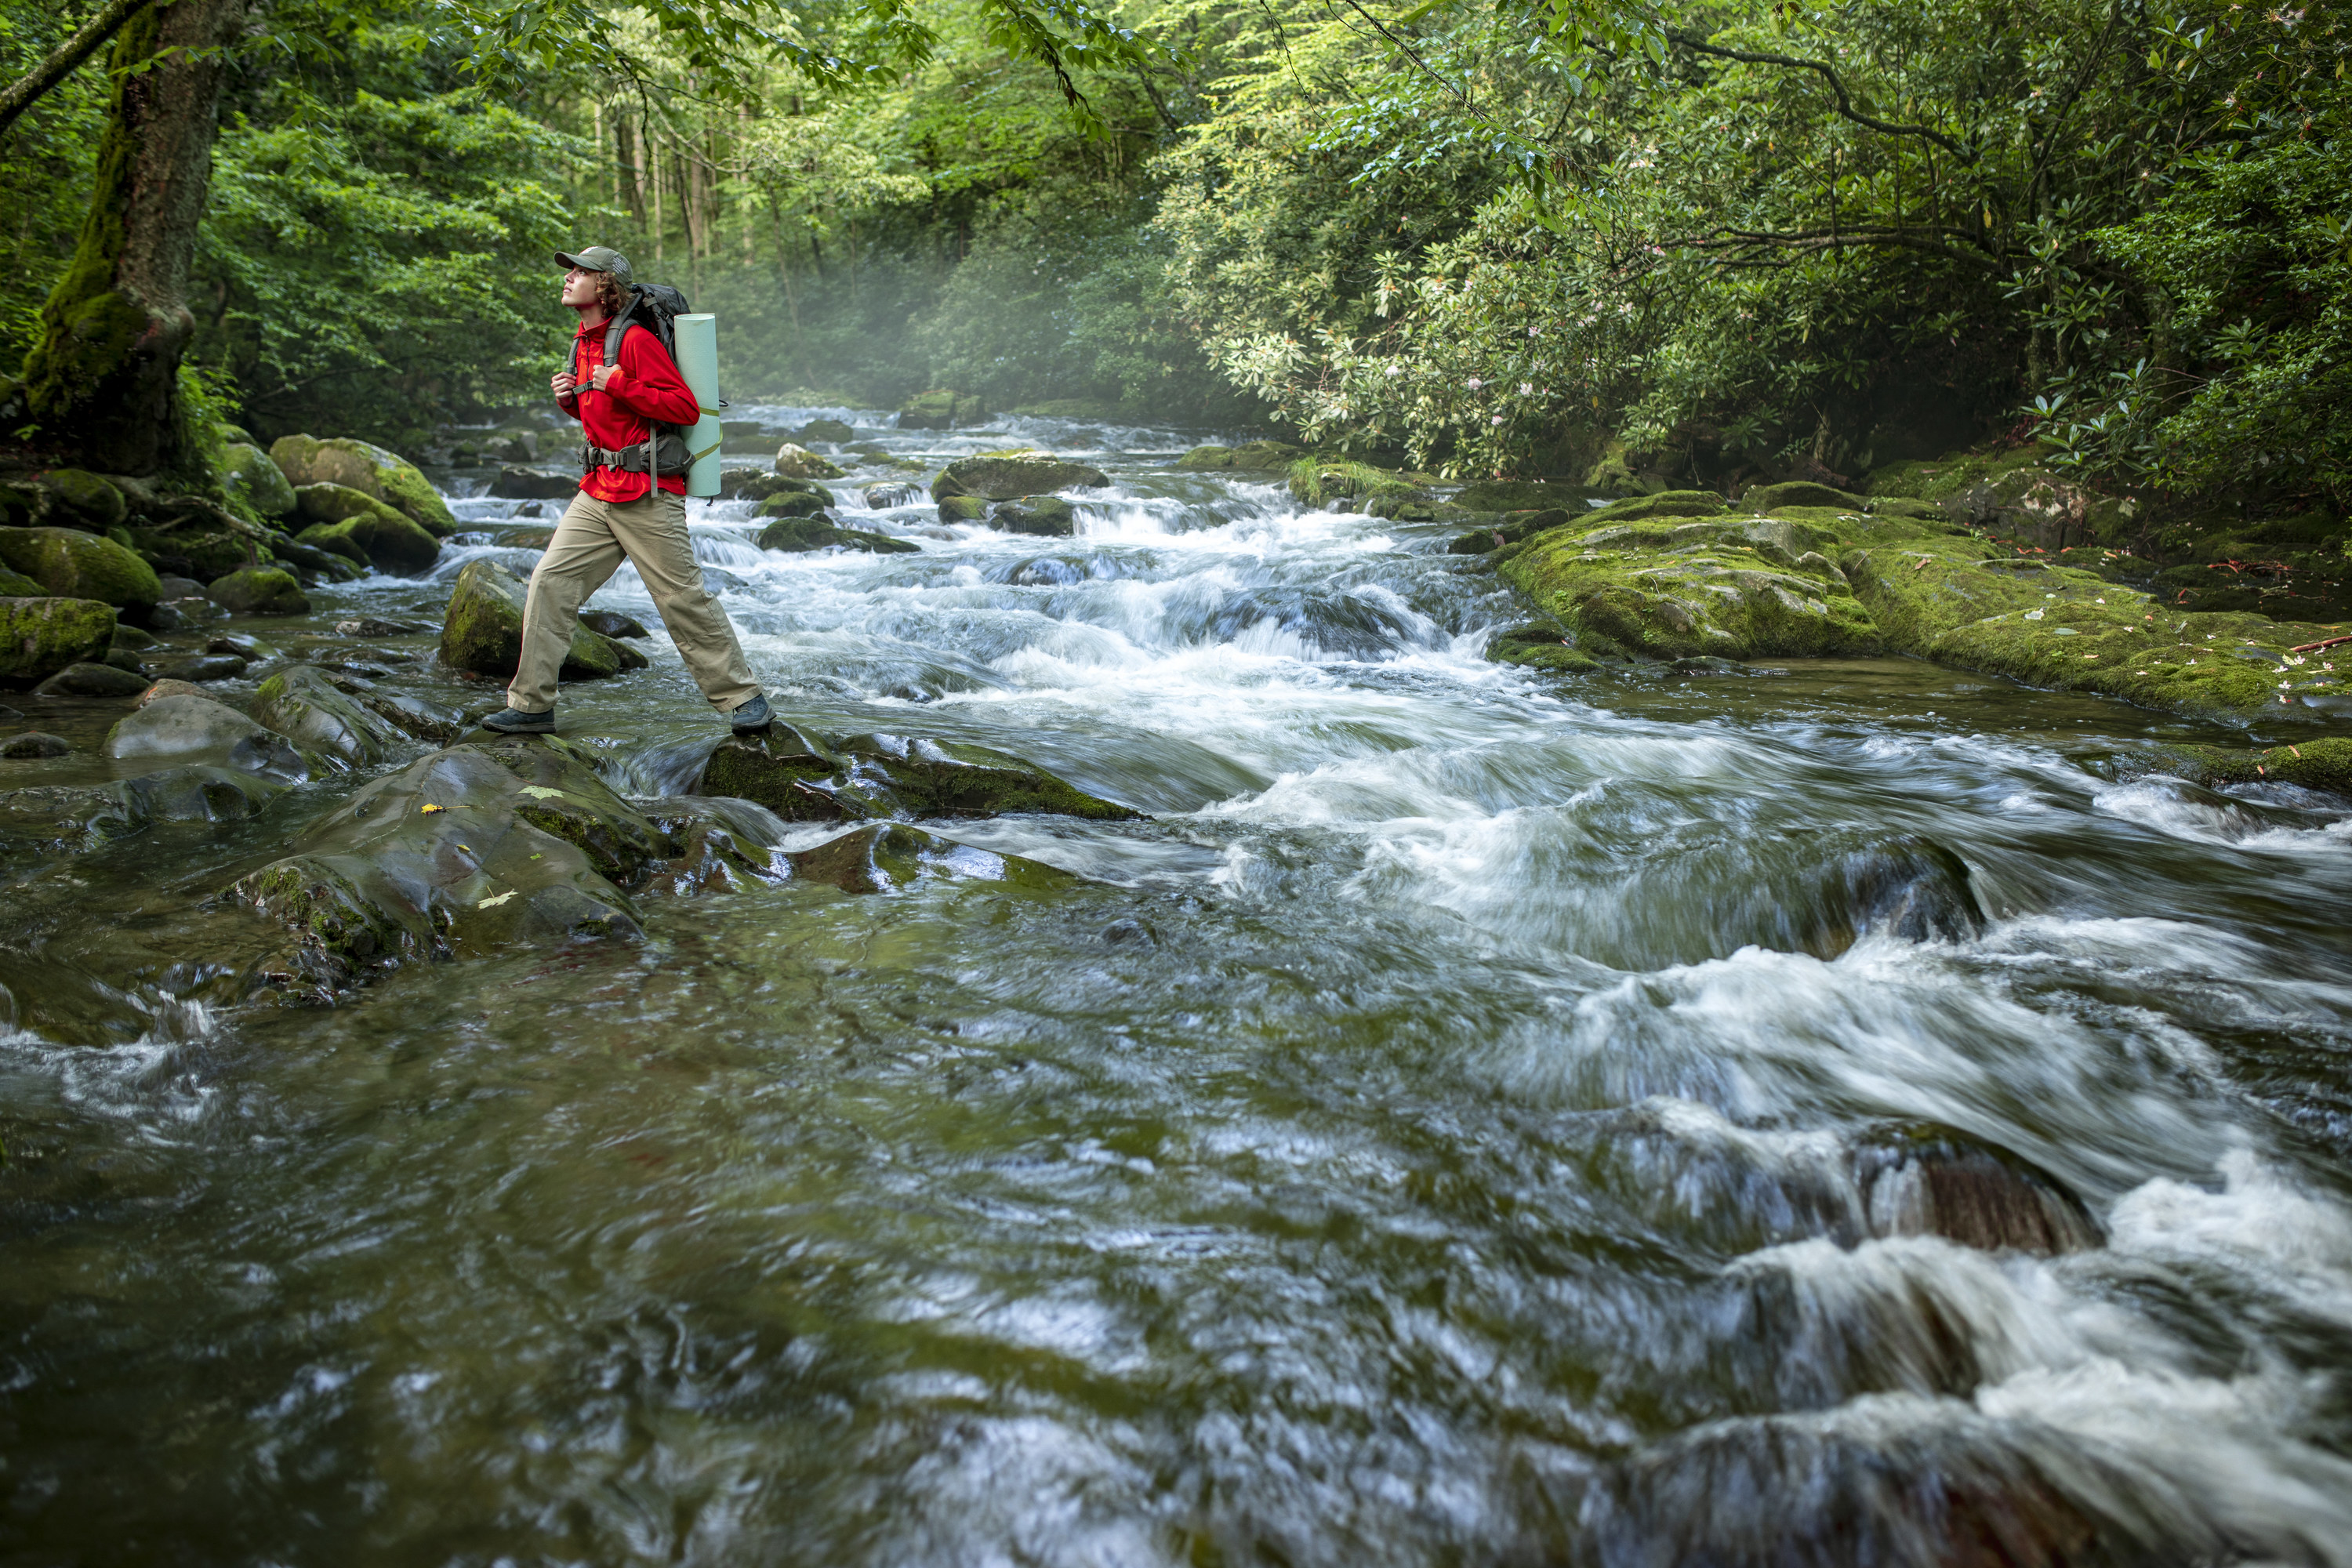 A hiker walks over the boulders that dot the roaring river in Great Smoky Mountains national park.